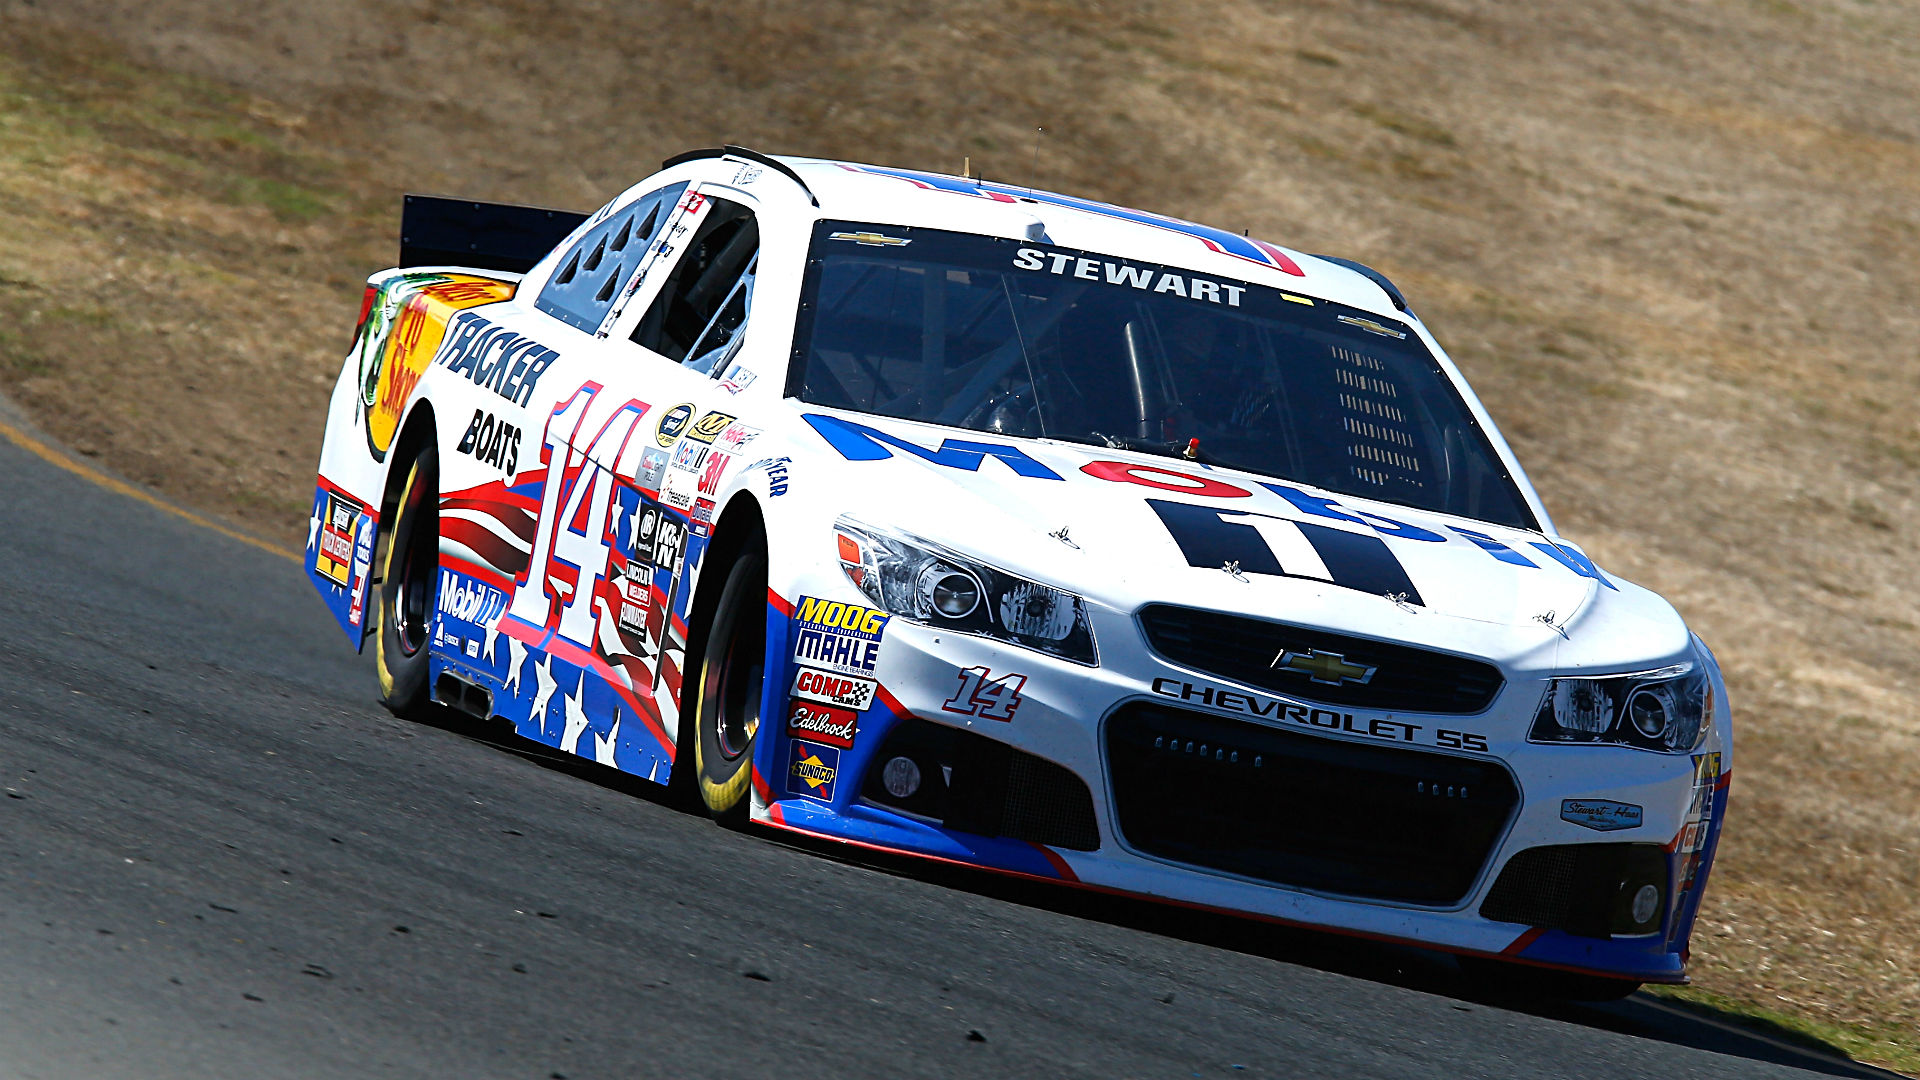 Tony Stewart's tirade among bizarre in-car audio highlights from Sonoma